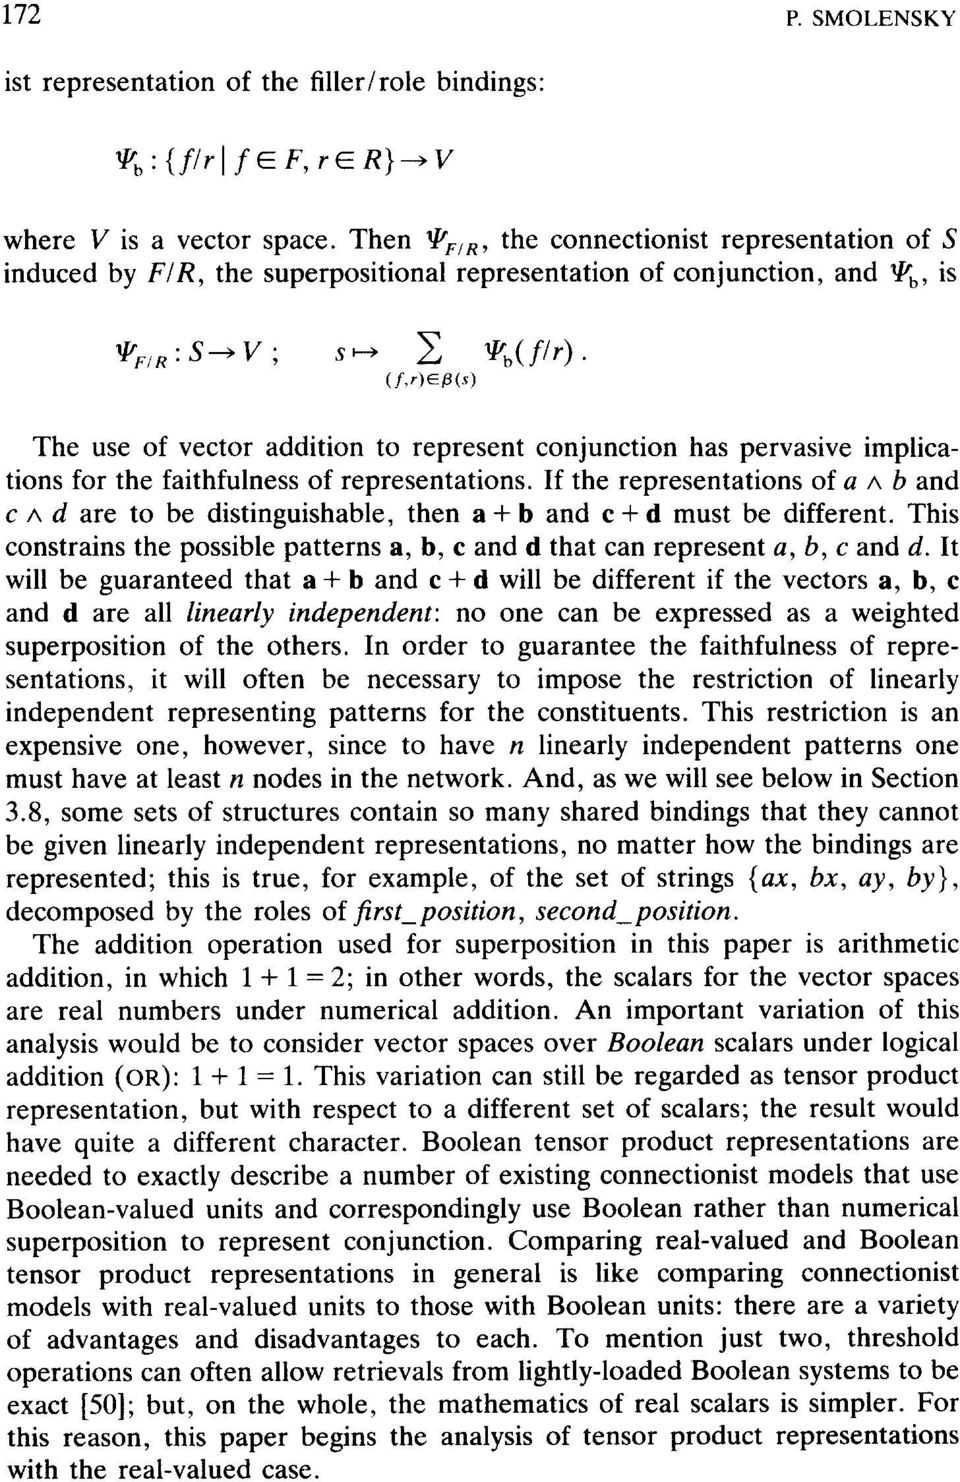 (f,r)~(s) The use of vector addition to represent conjunction has pervasive implications for the faithfulness of representations.